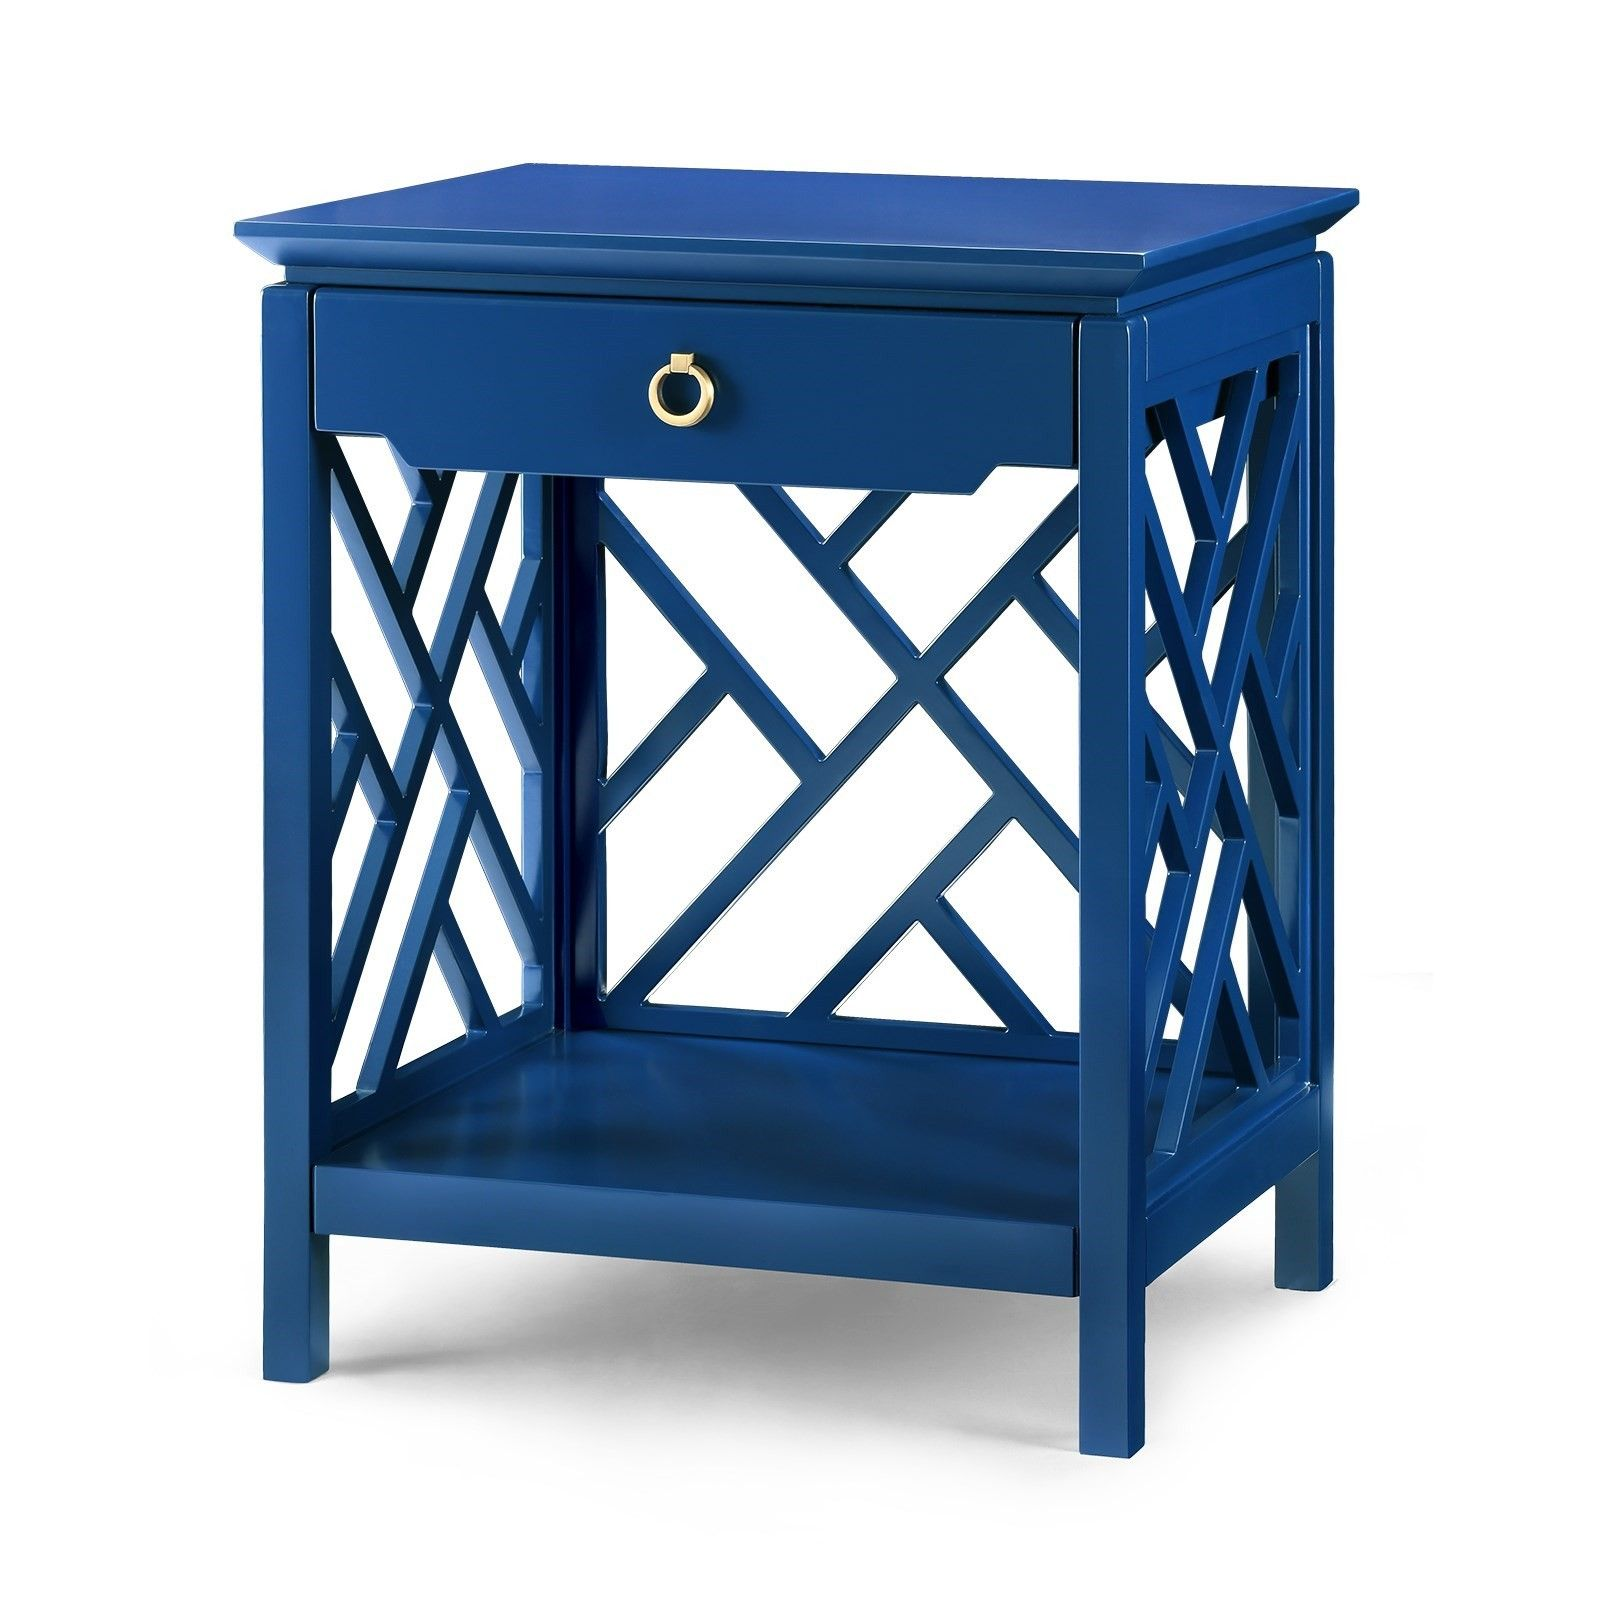 Amazing Bungalow 5 Nantucket Chippendale Fretwork 1 Drawer Side Table In Blue